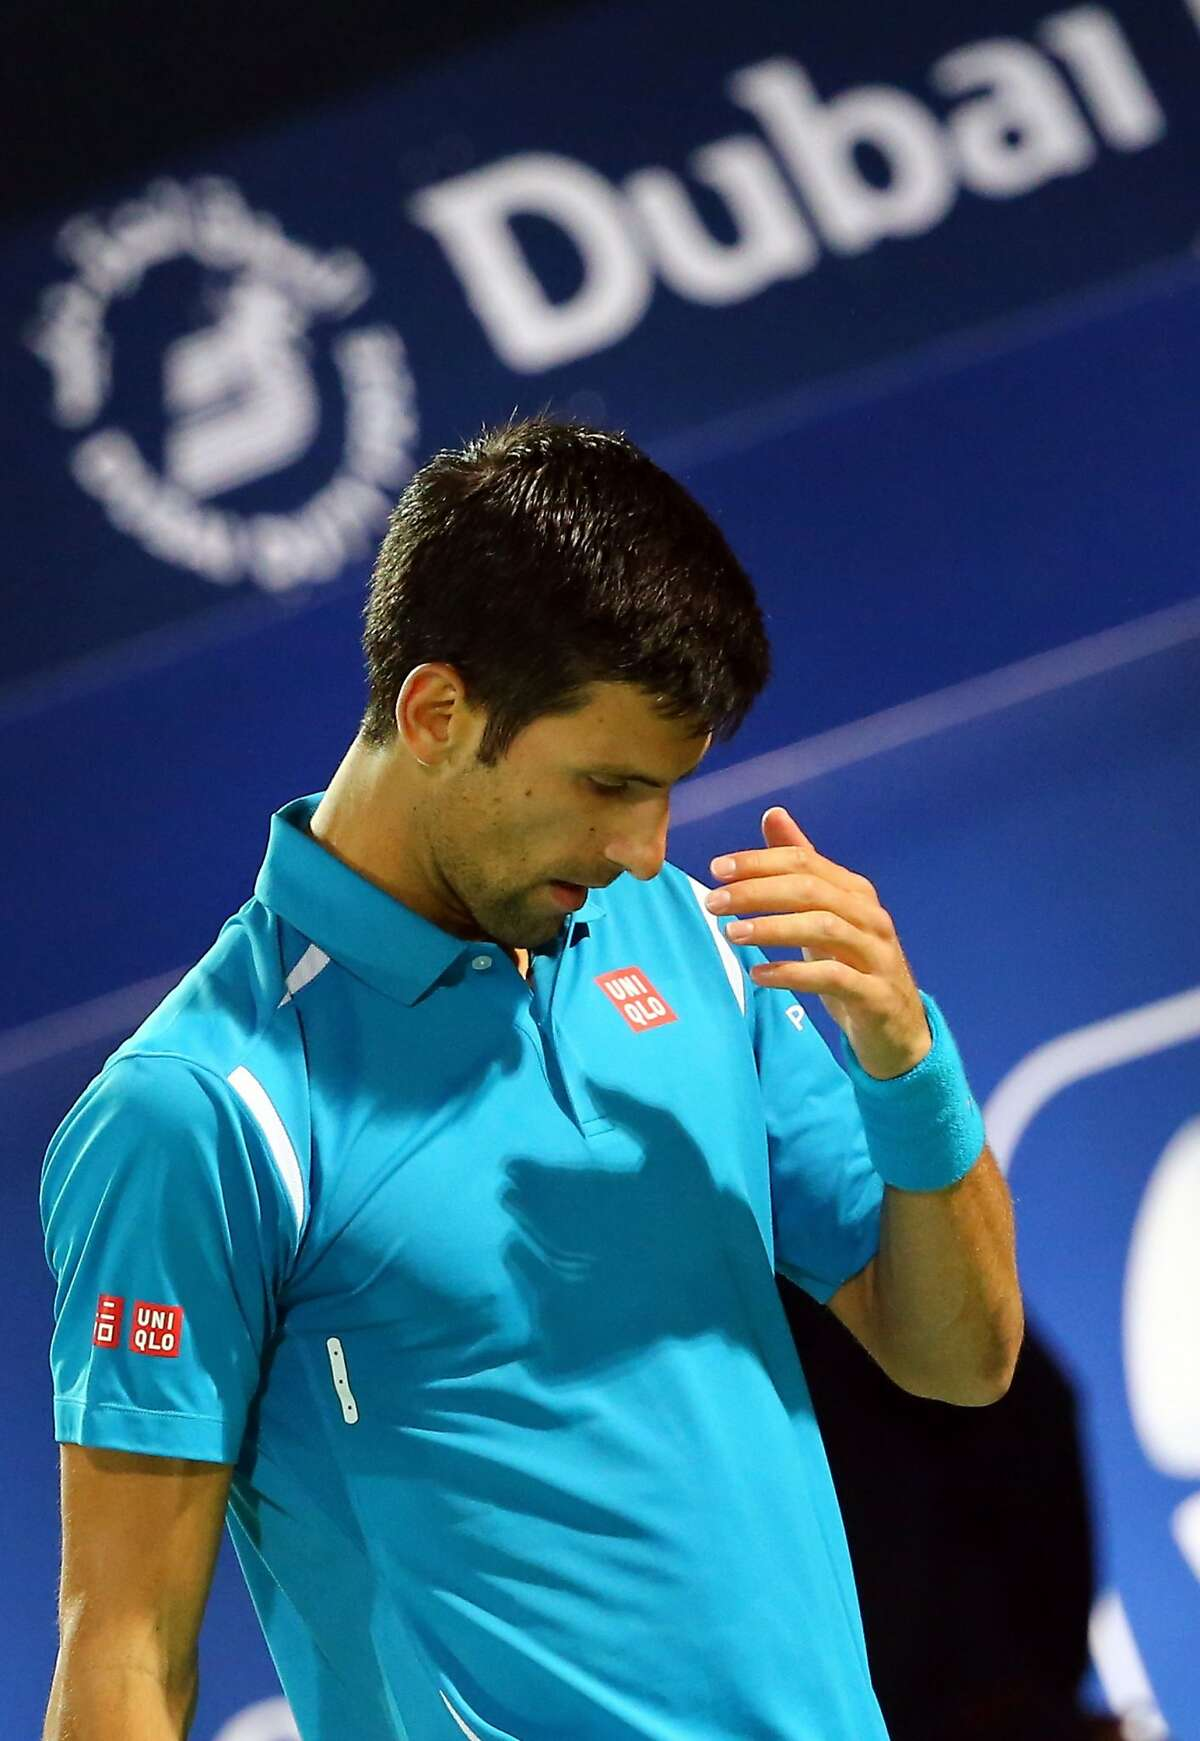 Serbian Novak Djokovic reaches for his right eye during his ATP quarterfinal tennis match against Spain's Feliciano Lopez during the Dubai Duty Free Tennis Championships February 25, 2016. / AFP / MARWAN NAAMANIMARWAN NAAMANI/AFP/Getty Images